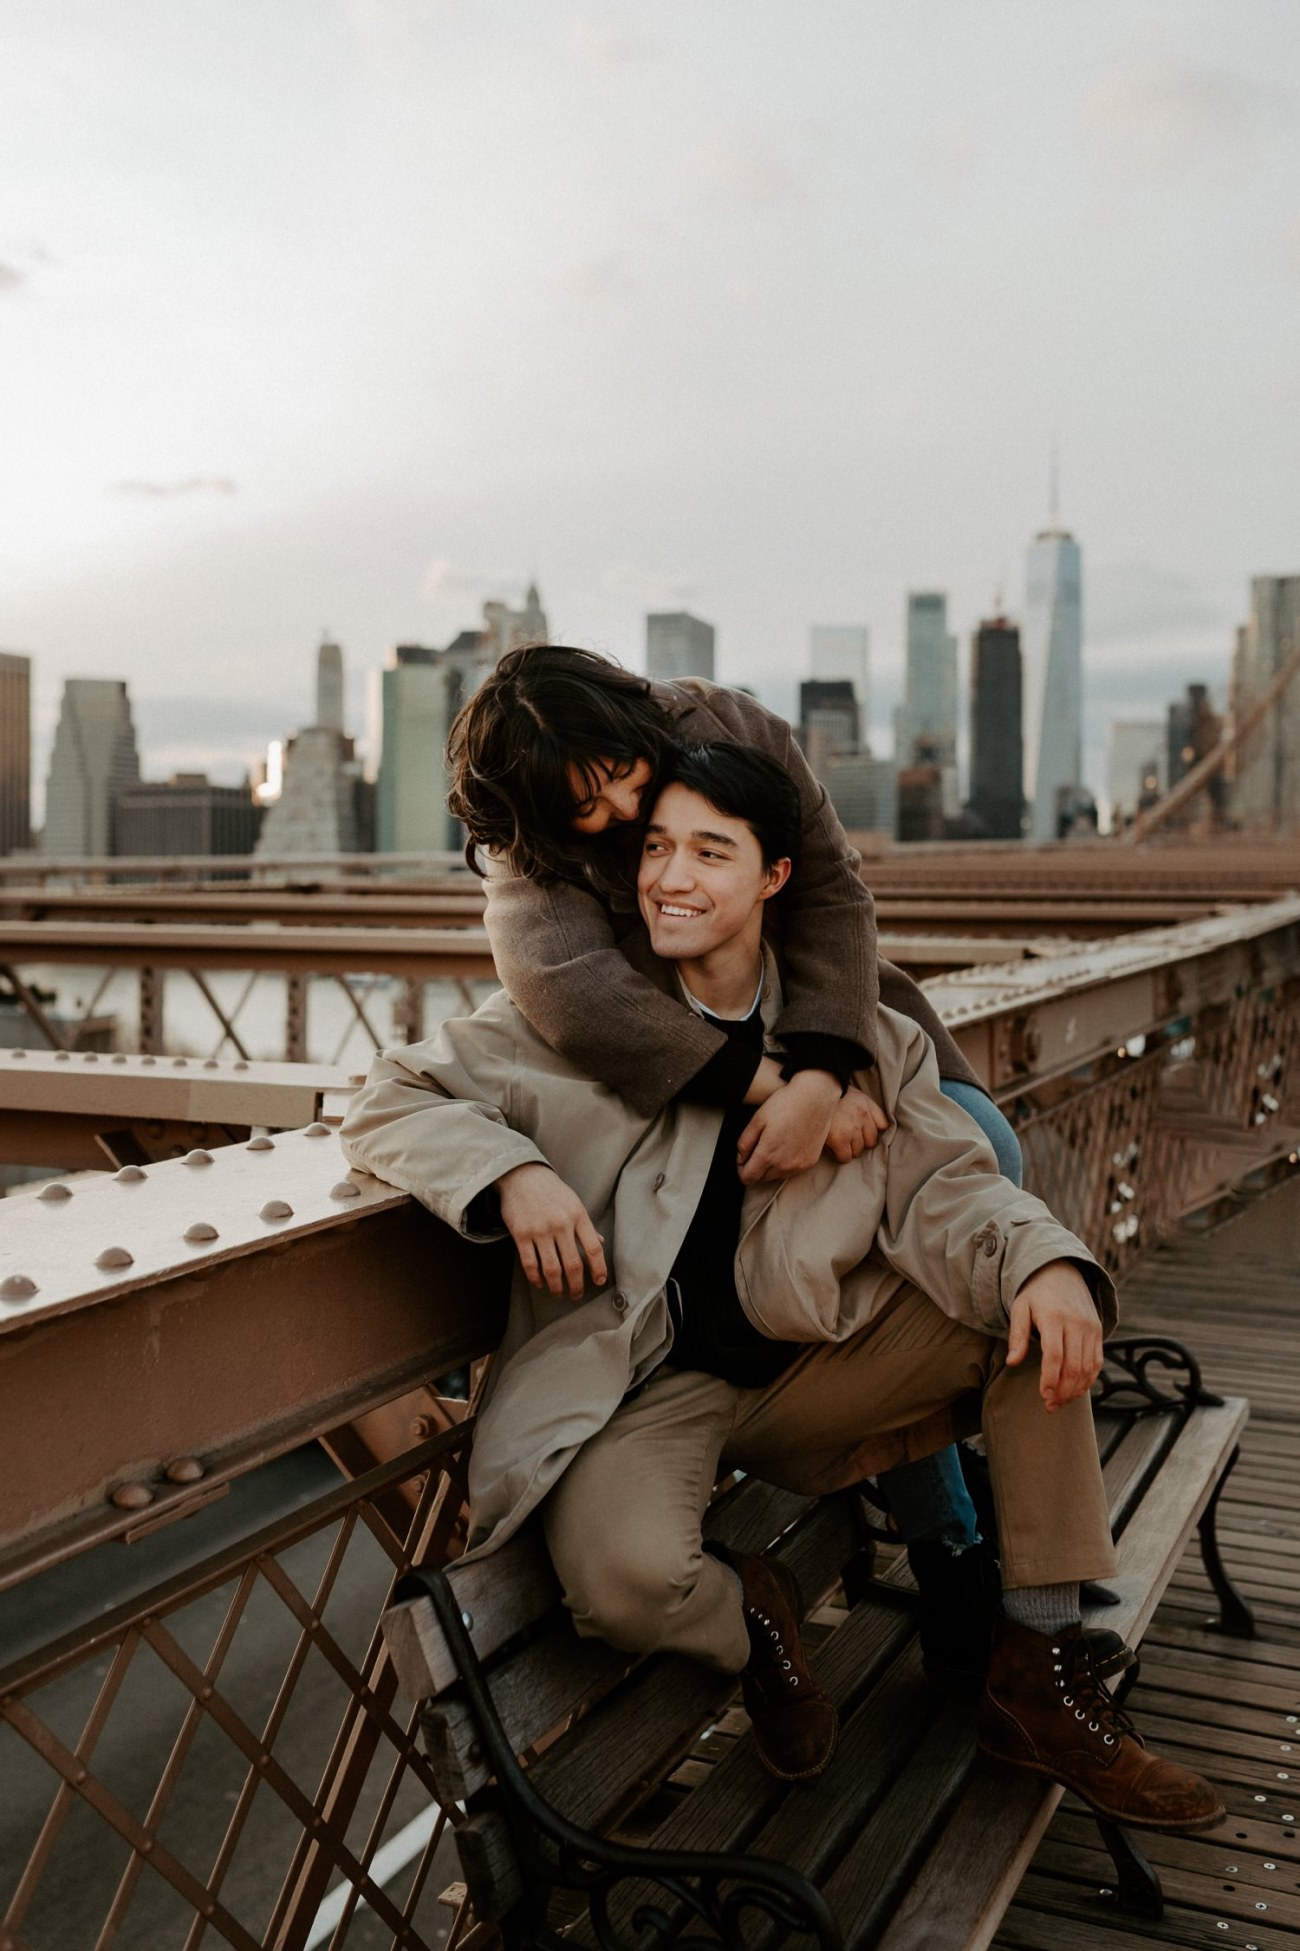 Brooklyn Bridge Sunset Couple Session New York Wedding Photographer NYC Best Engagement Photos Location Anais Possamai Photography 01